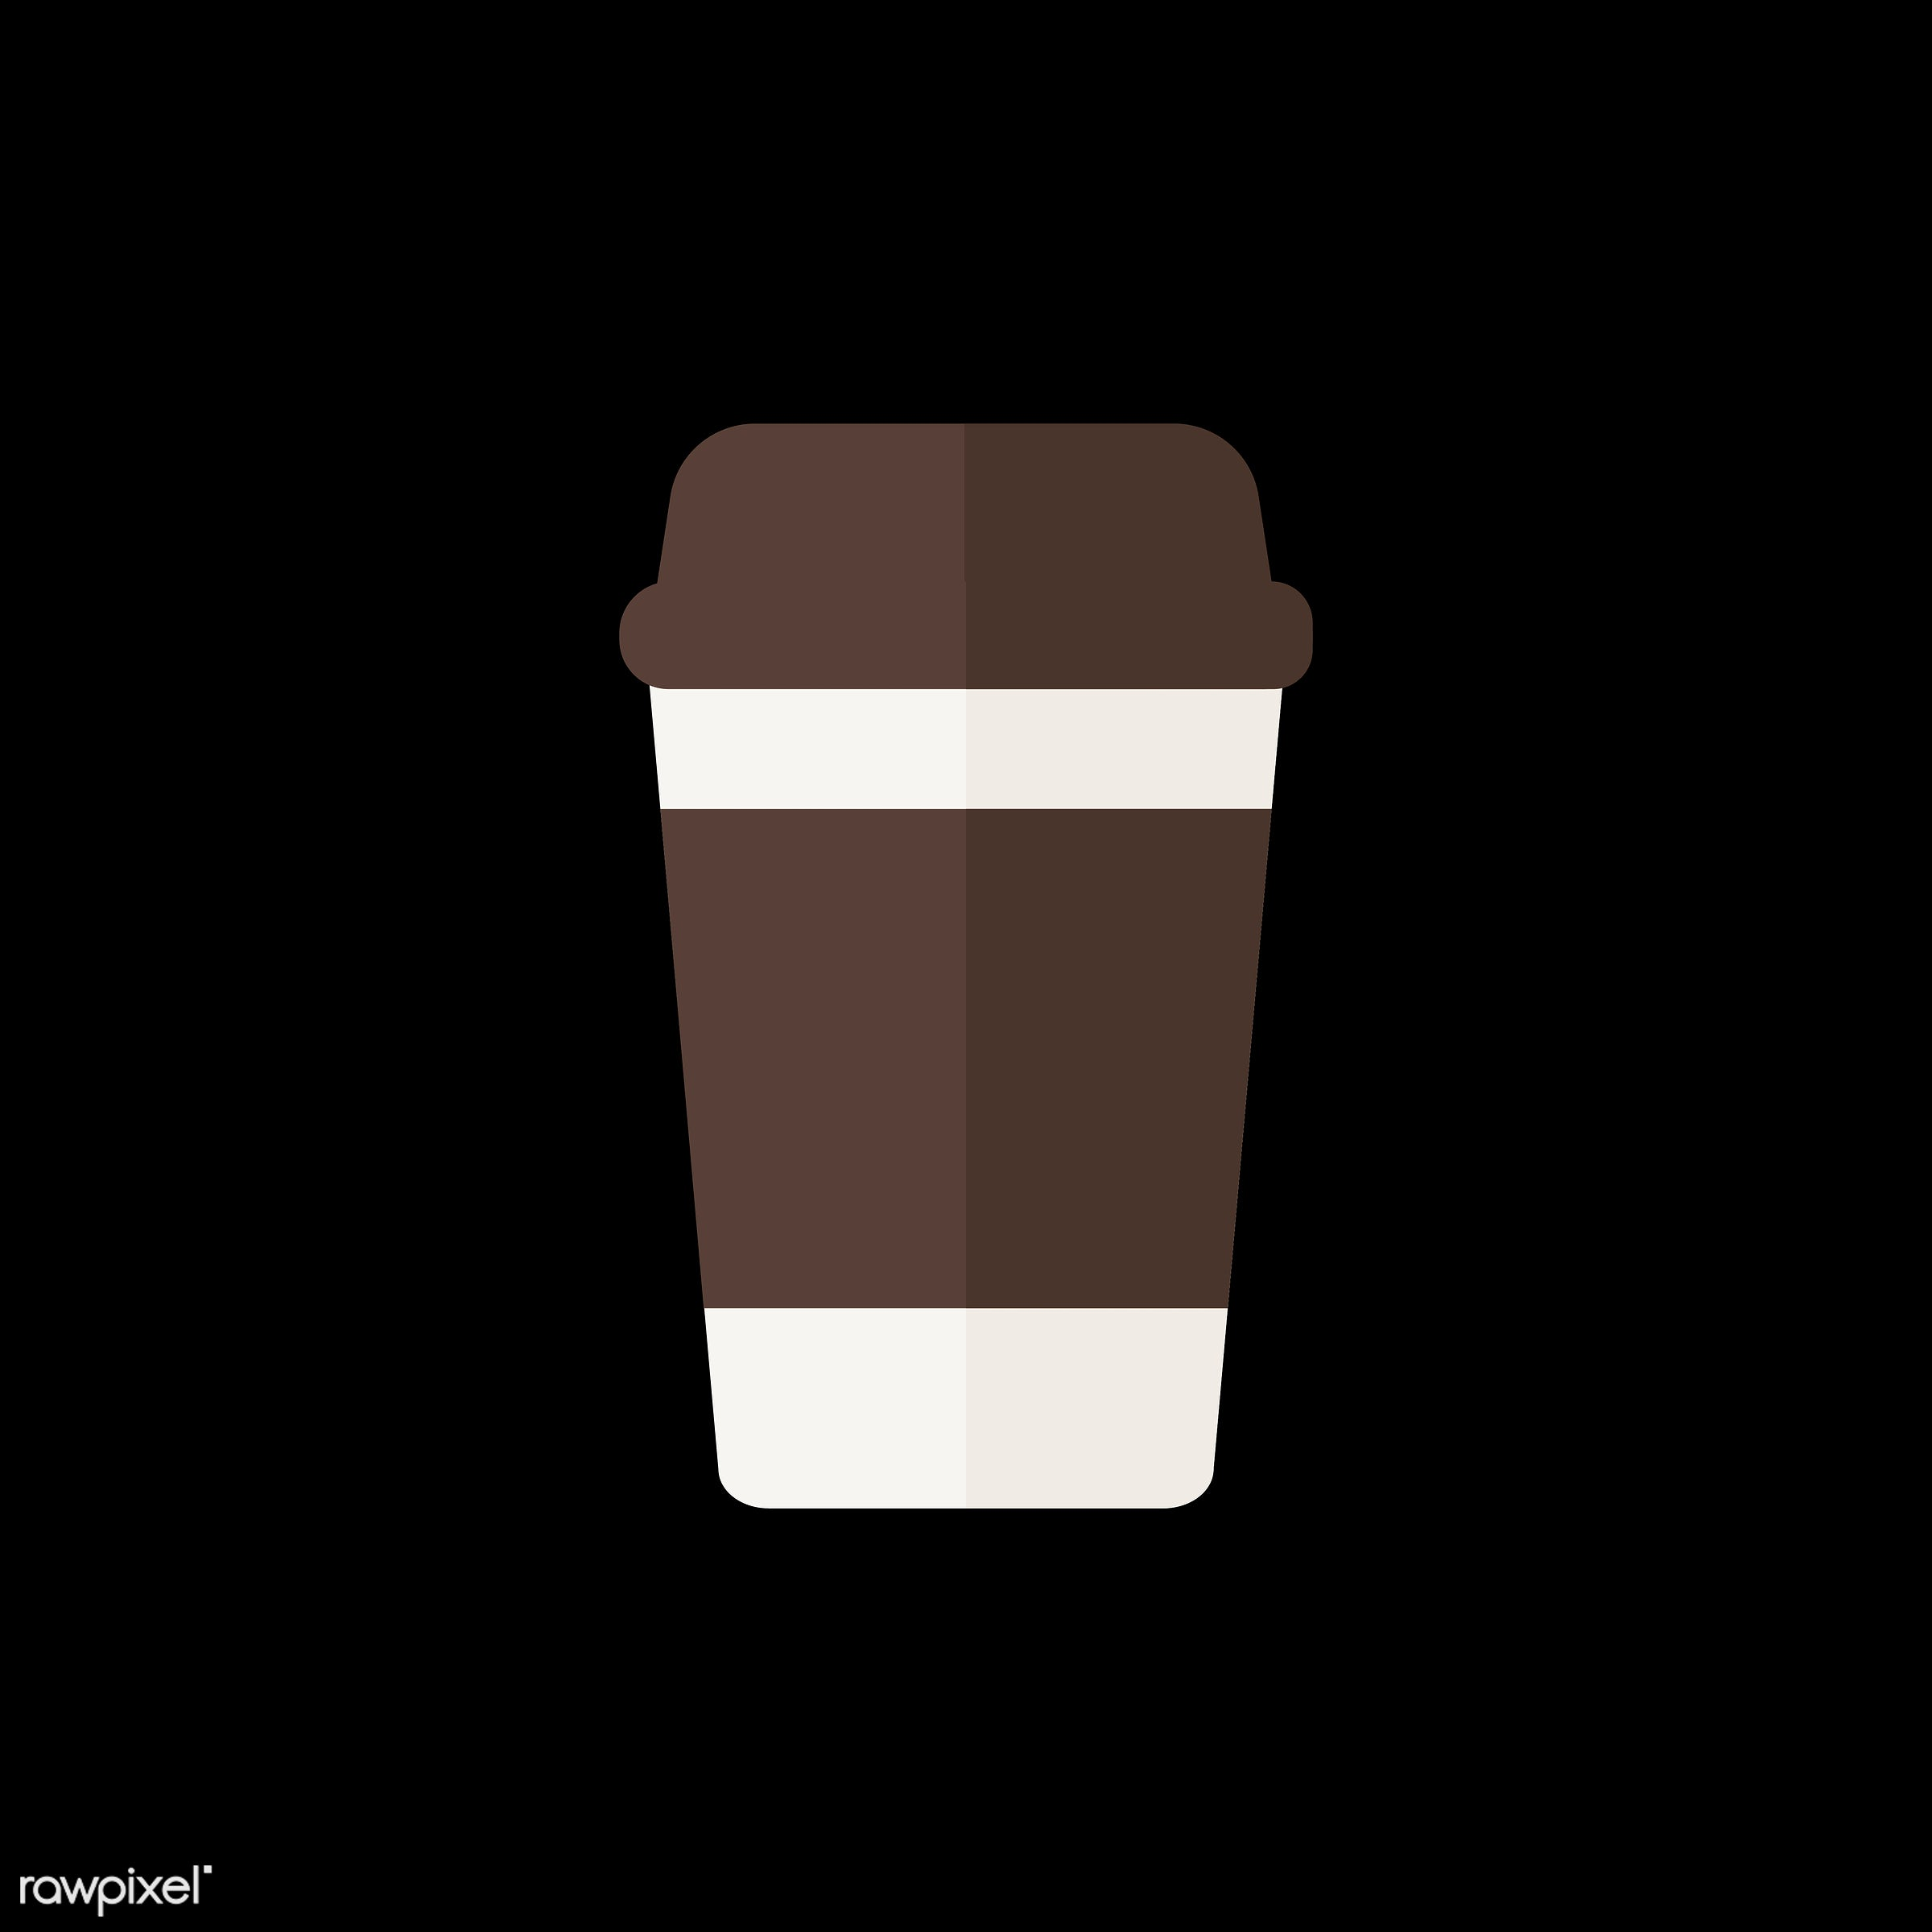 vector, graphic, illustration, icon, symbol, colorful, cute, drink, beverage, water, hot drink, coffee, coffee cup, coffee...